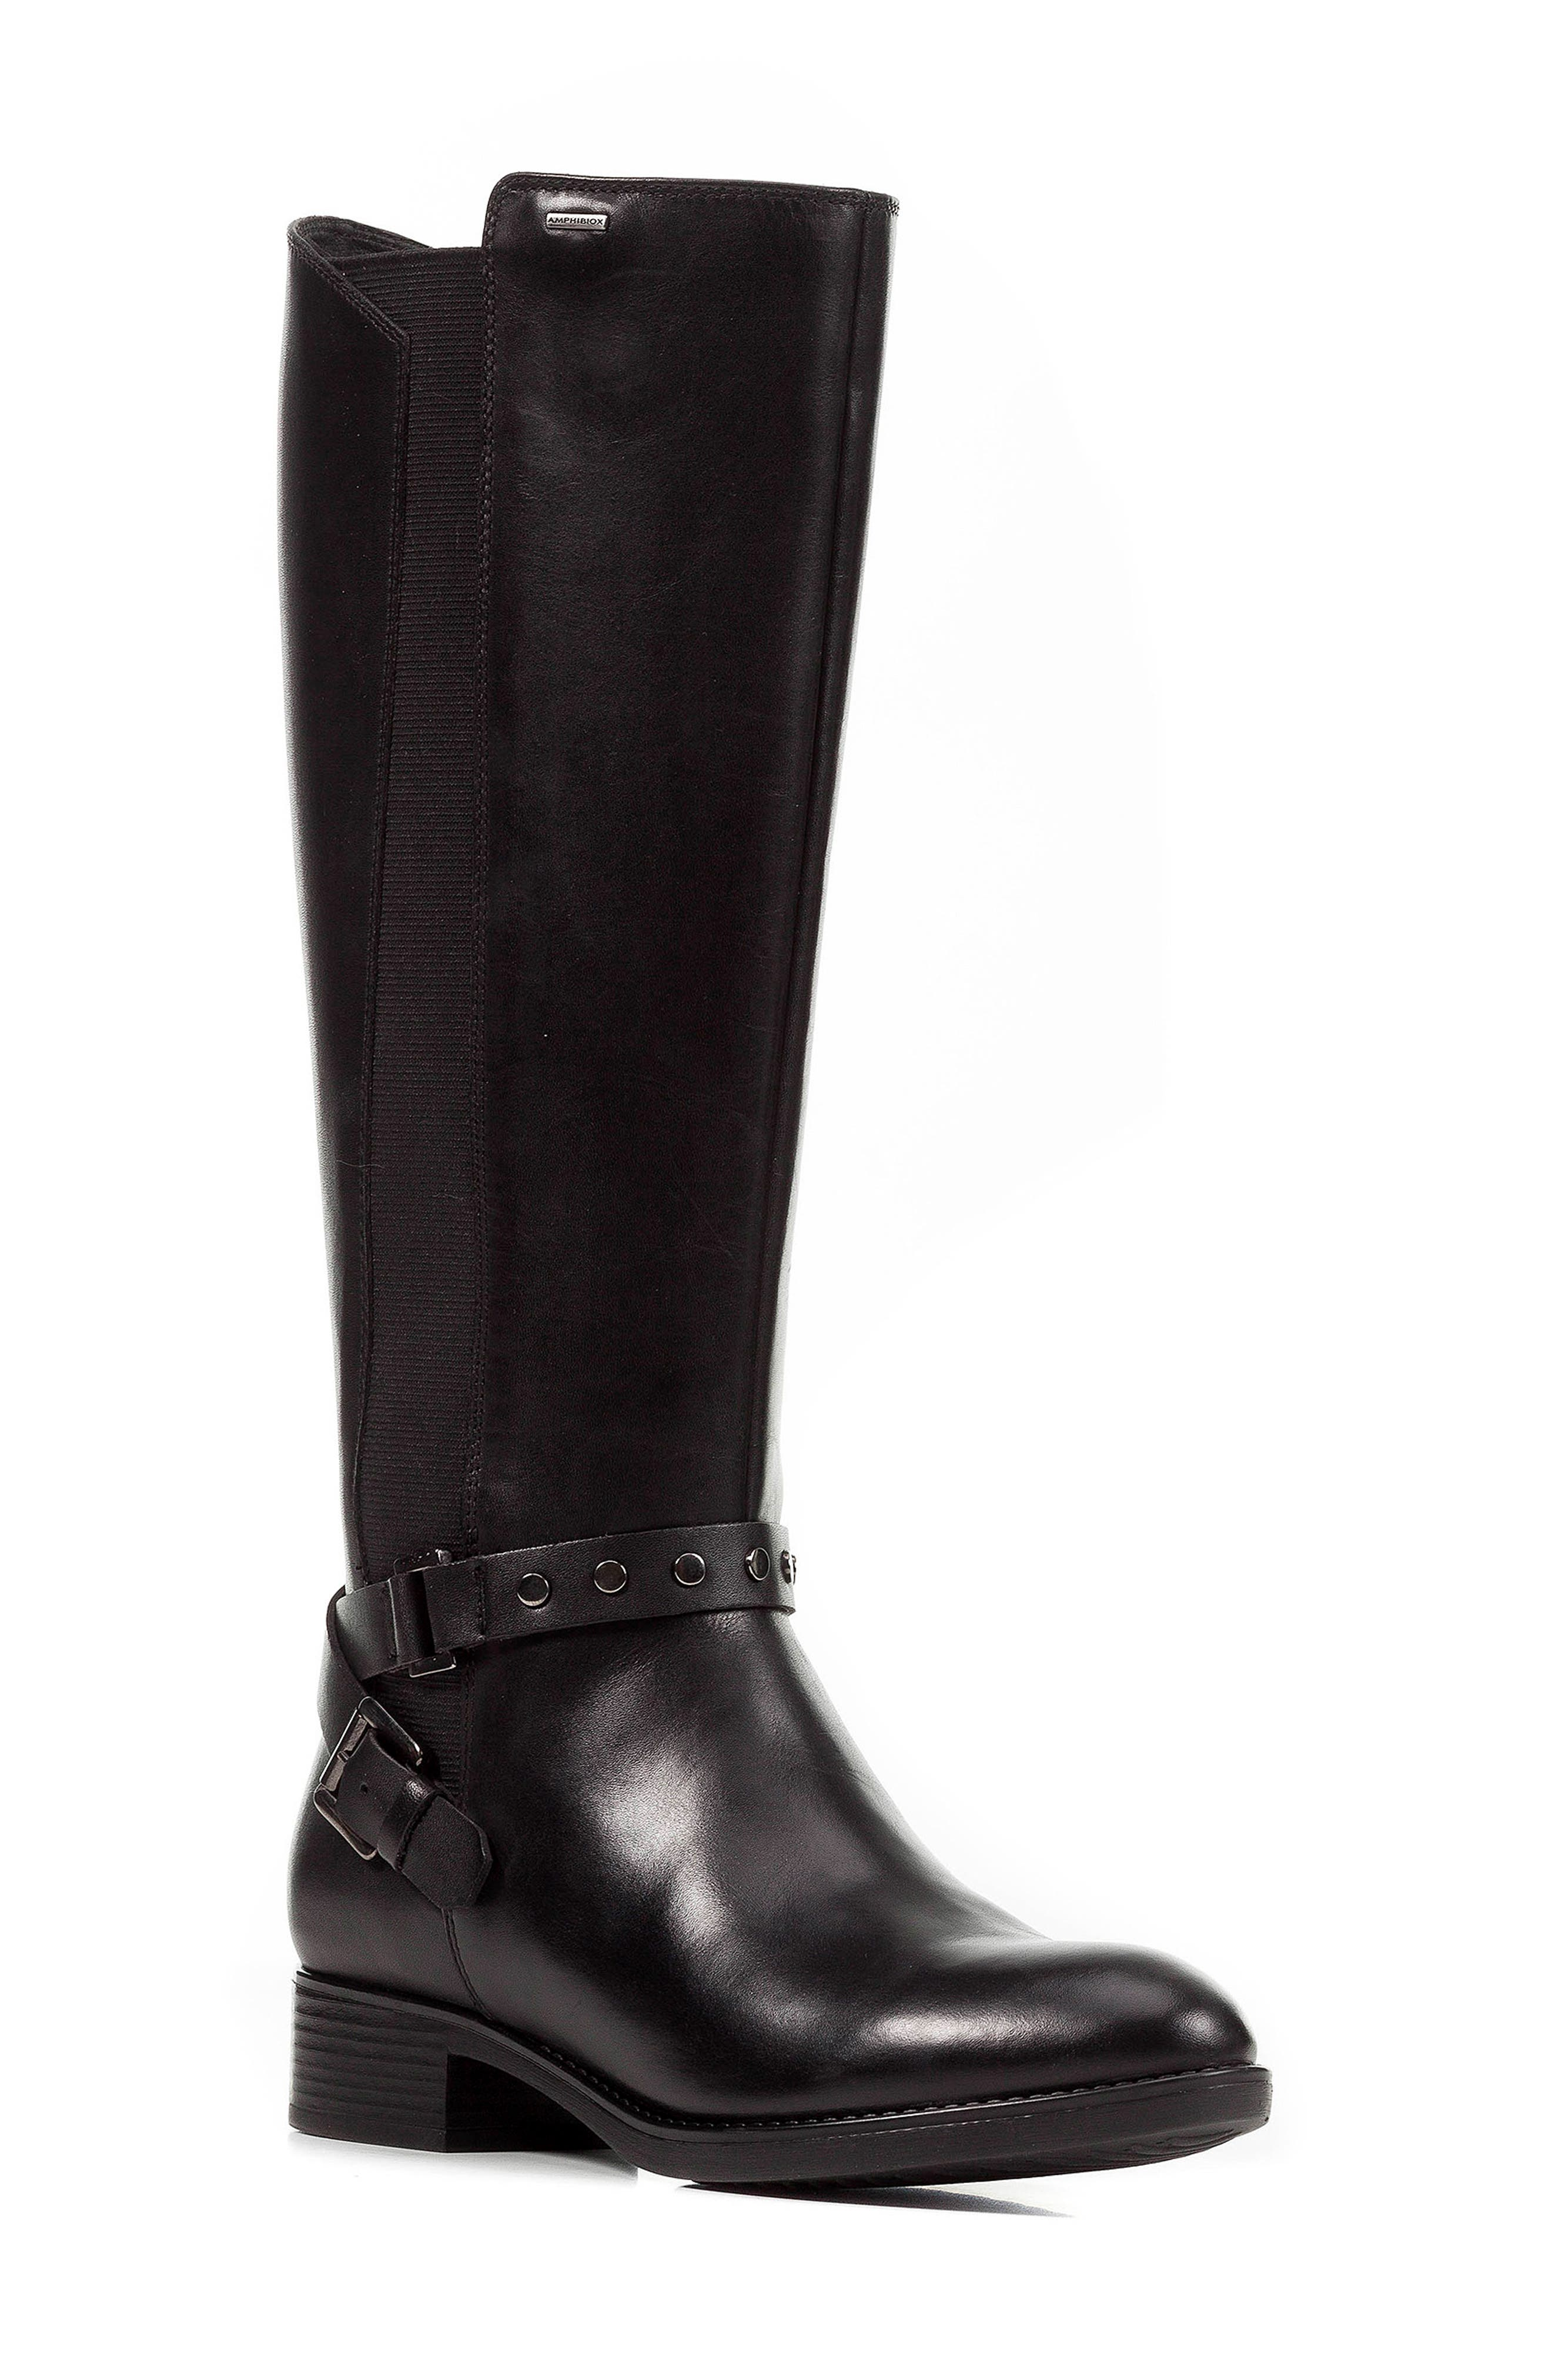 Felicity ABX Waterproof Knee High Riding Boot,                         Main,                         color, BLACK LEATHER